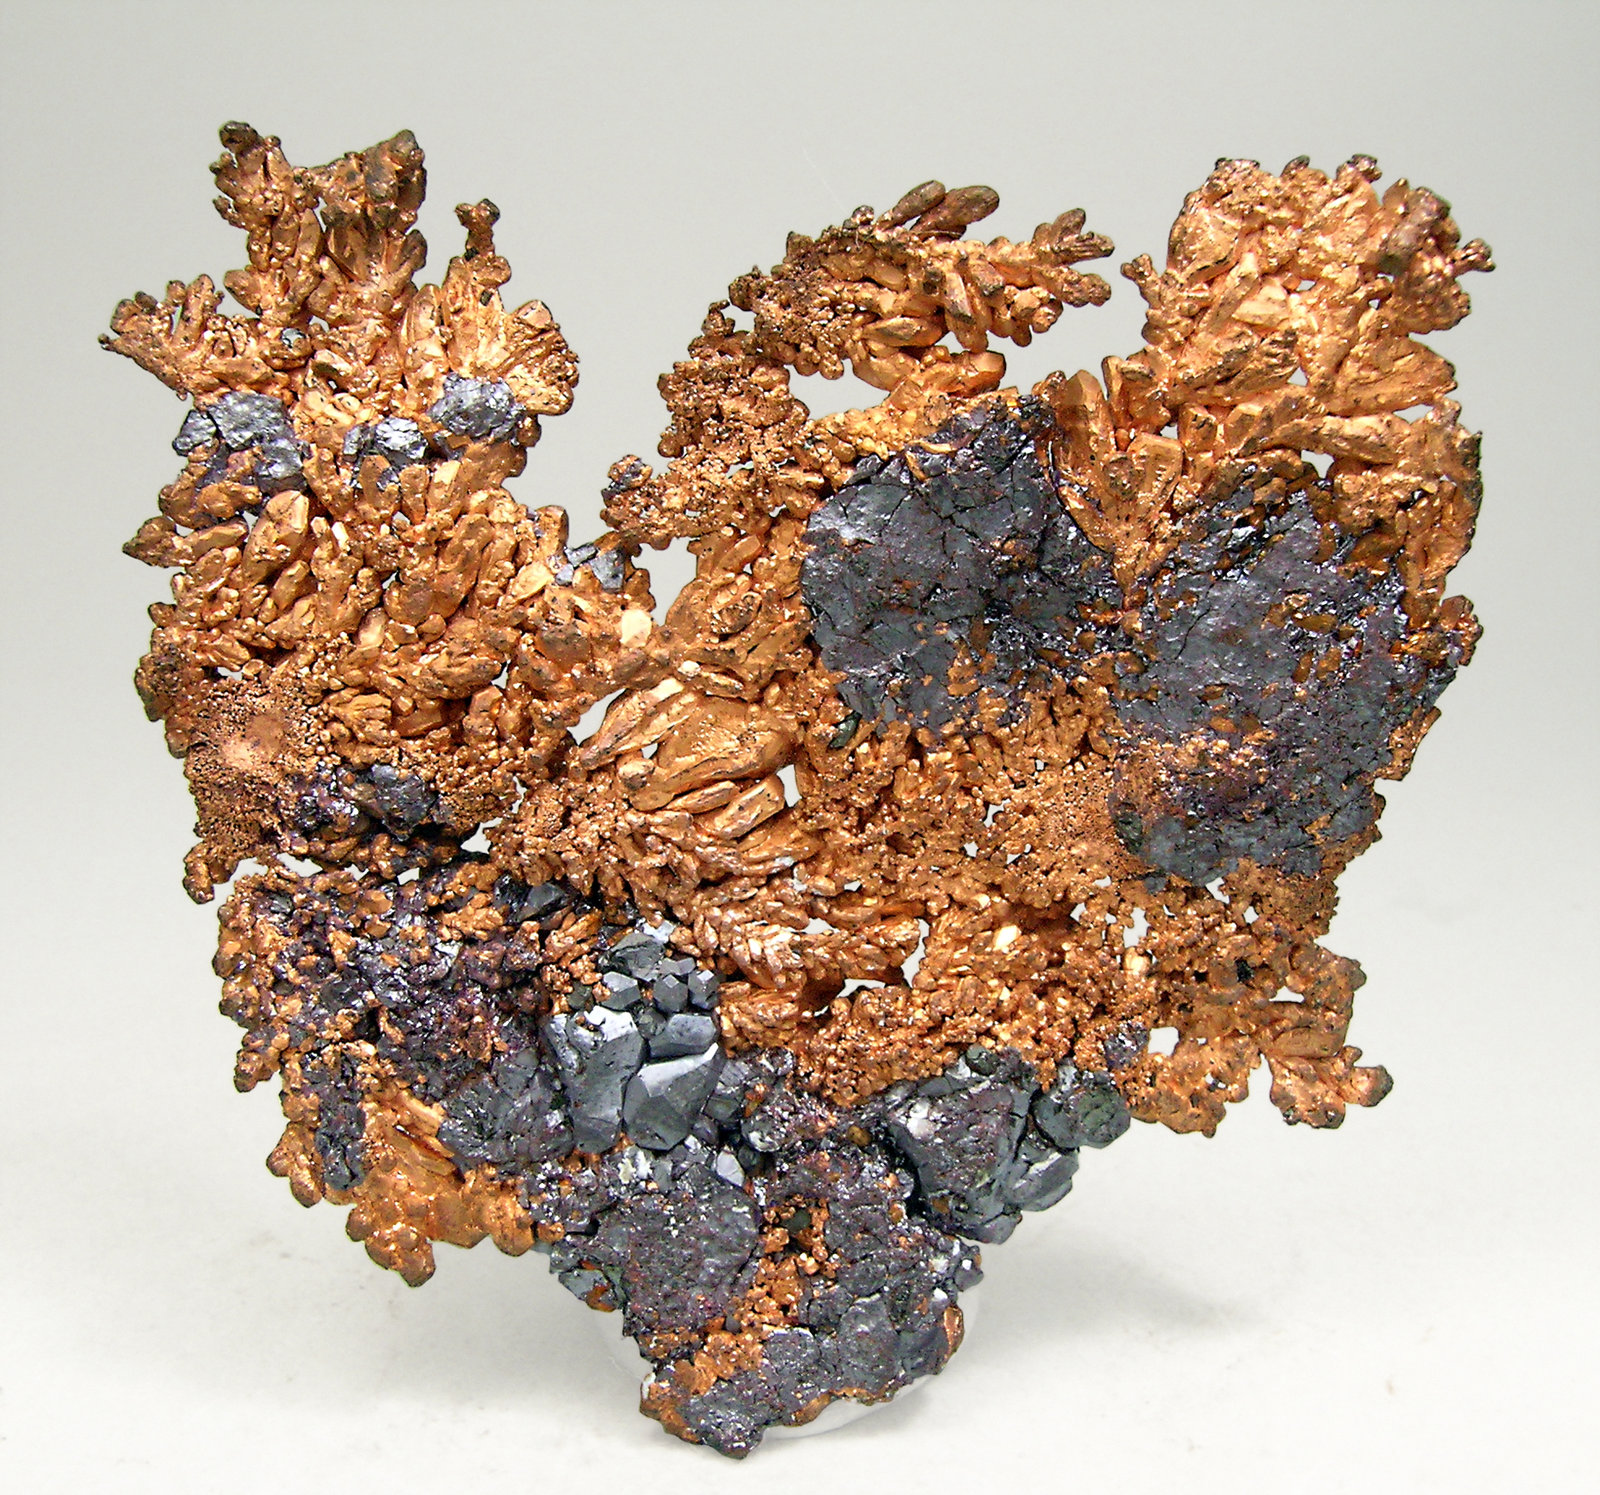 specimens/s_imagesN6/Copper-AV47N6r.jpg